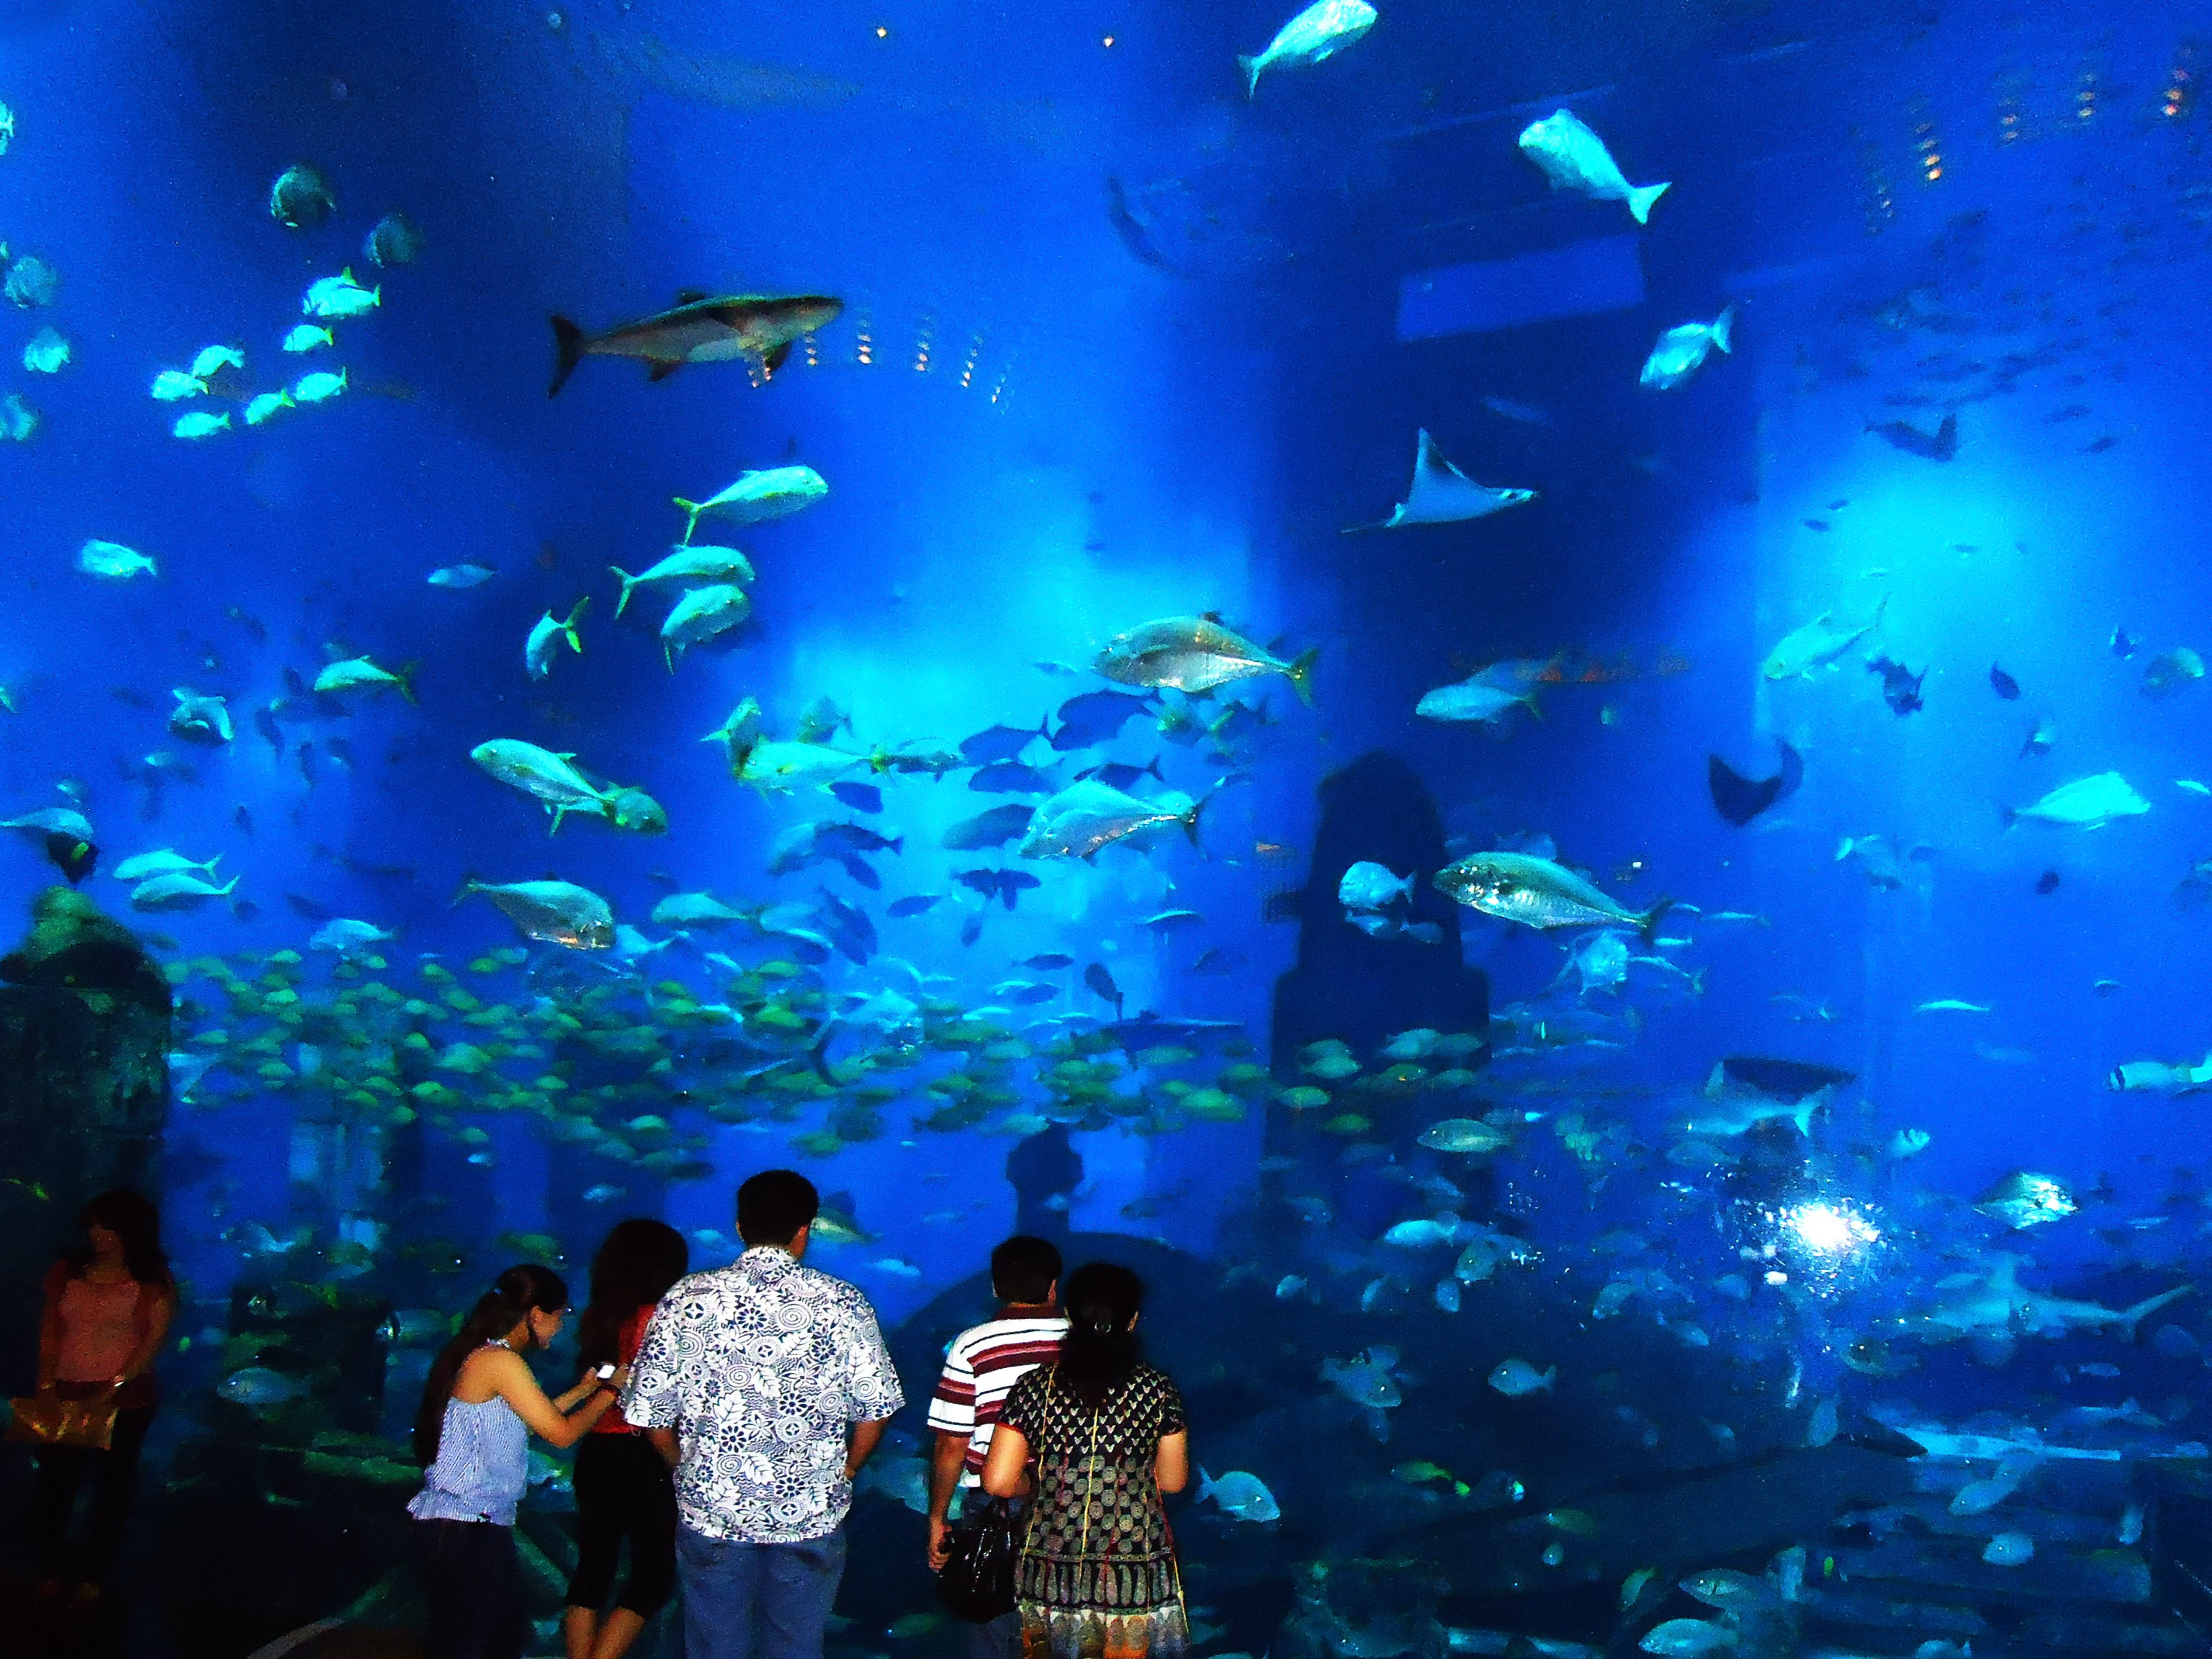 The Dubai Aquarium – World Full of Marine Wonders